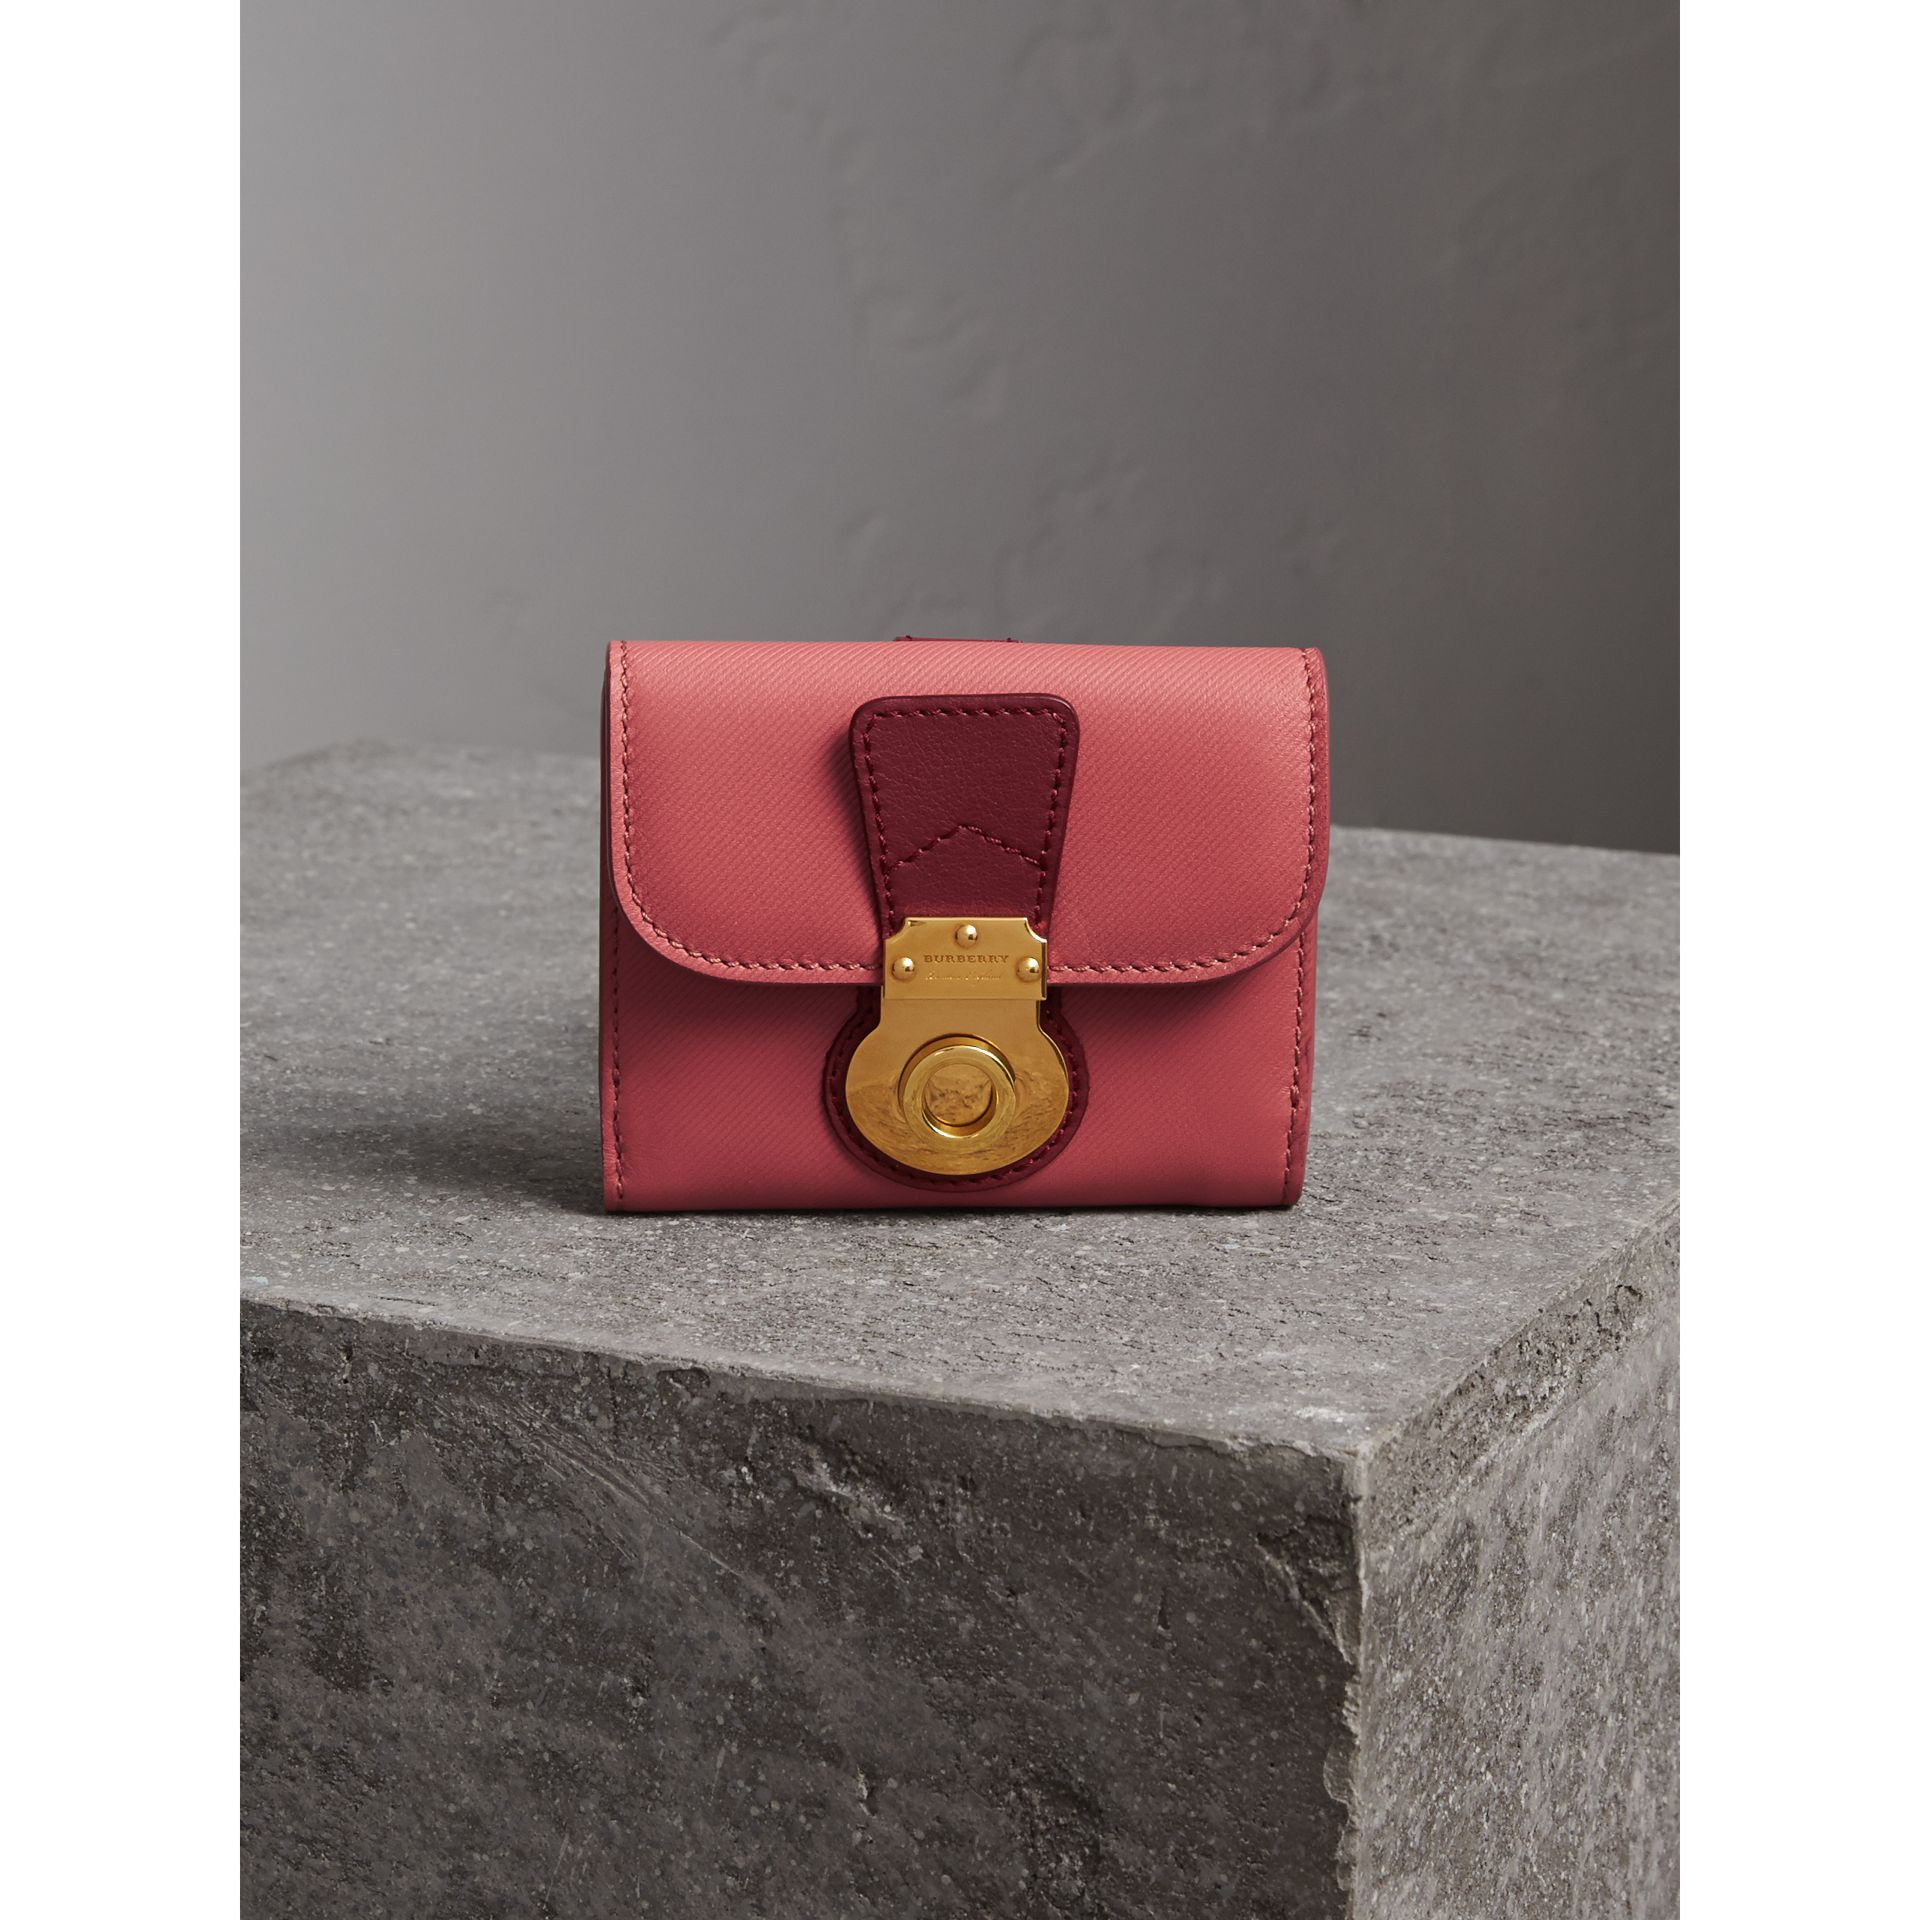 Two-tone Trench Leather Wallet in Blossom Pink/ Antique Red - Women | Burberry - gallery image 5